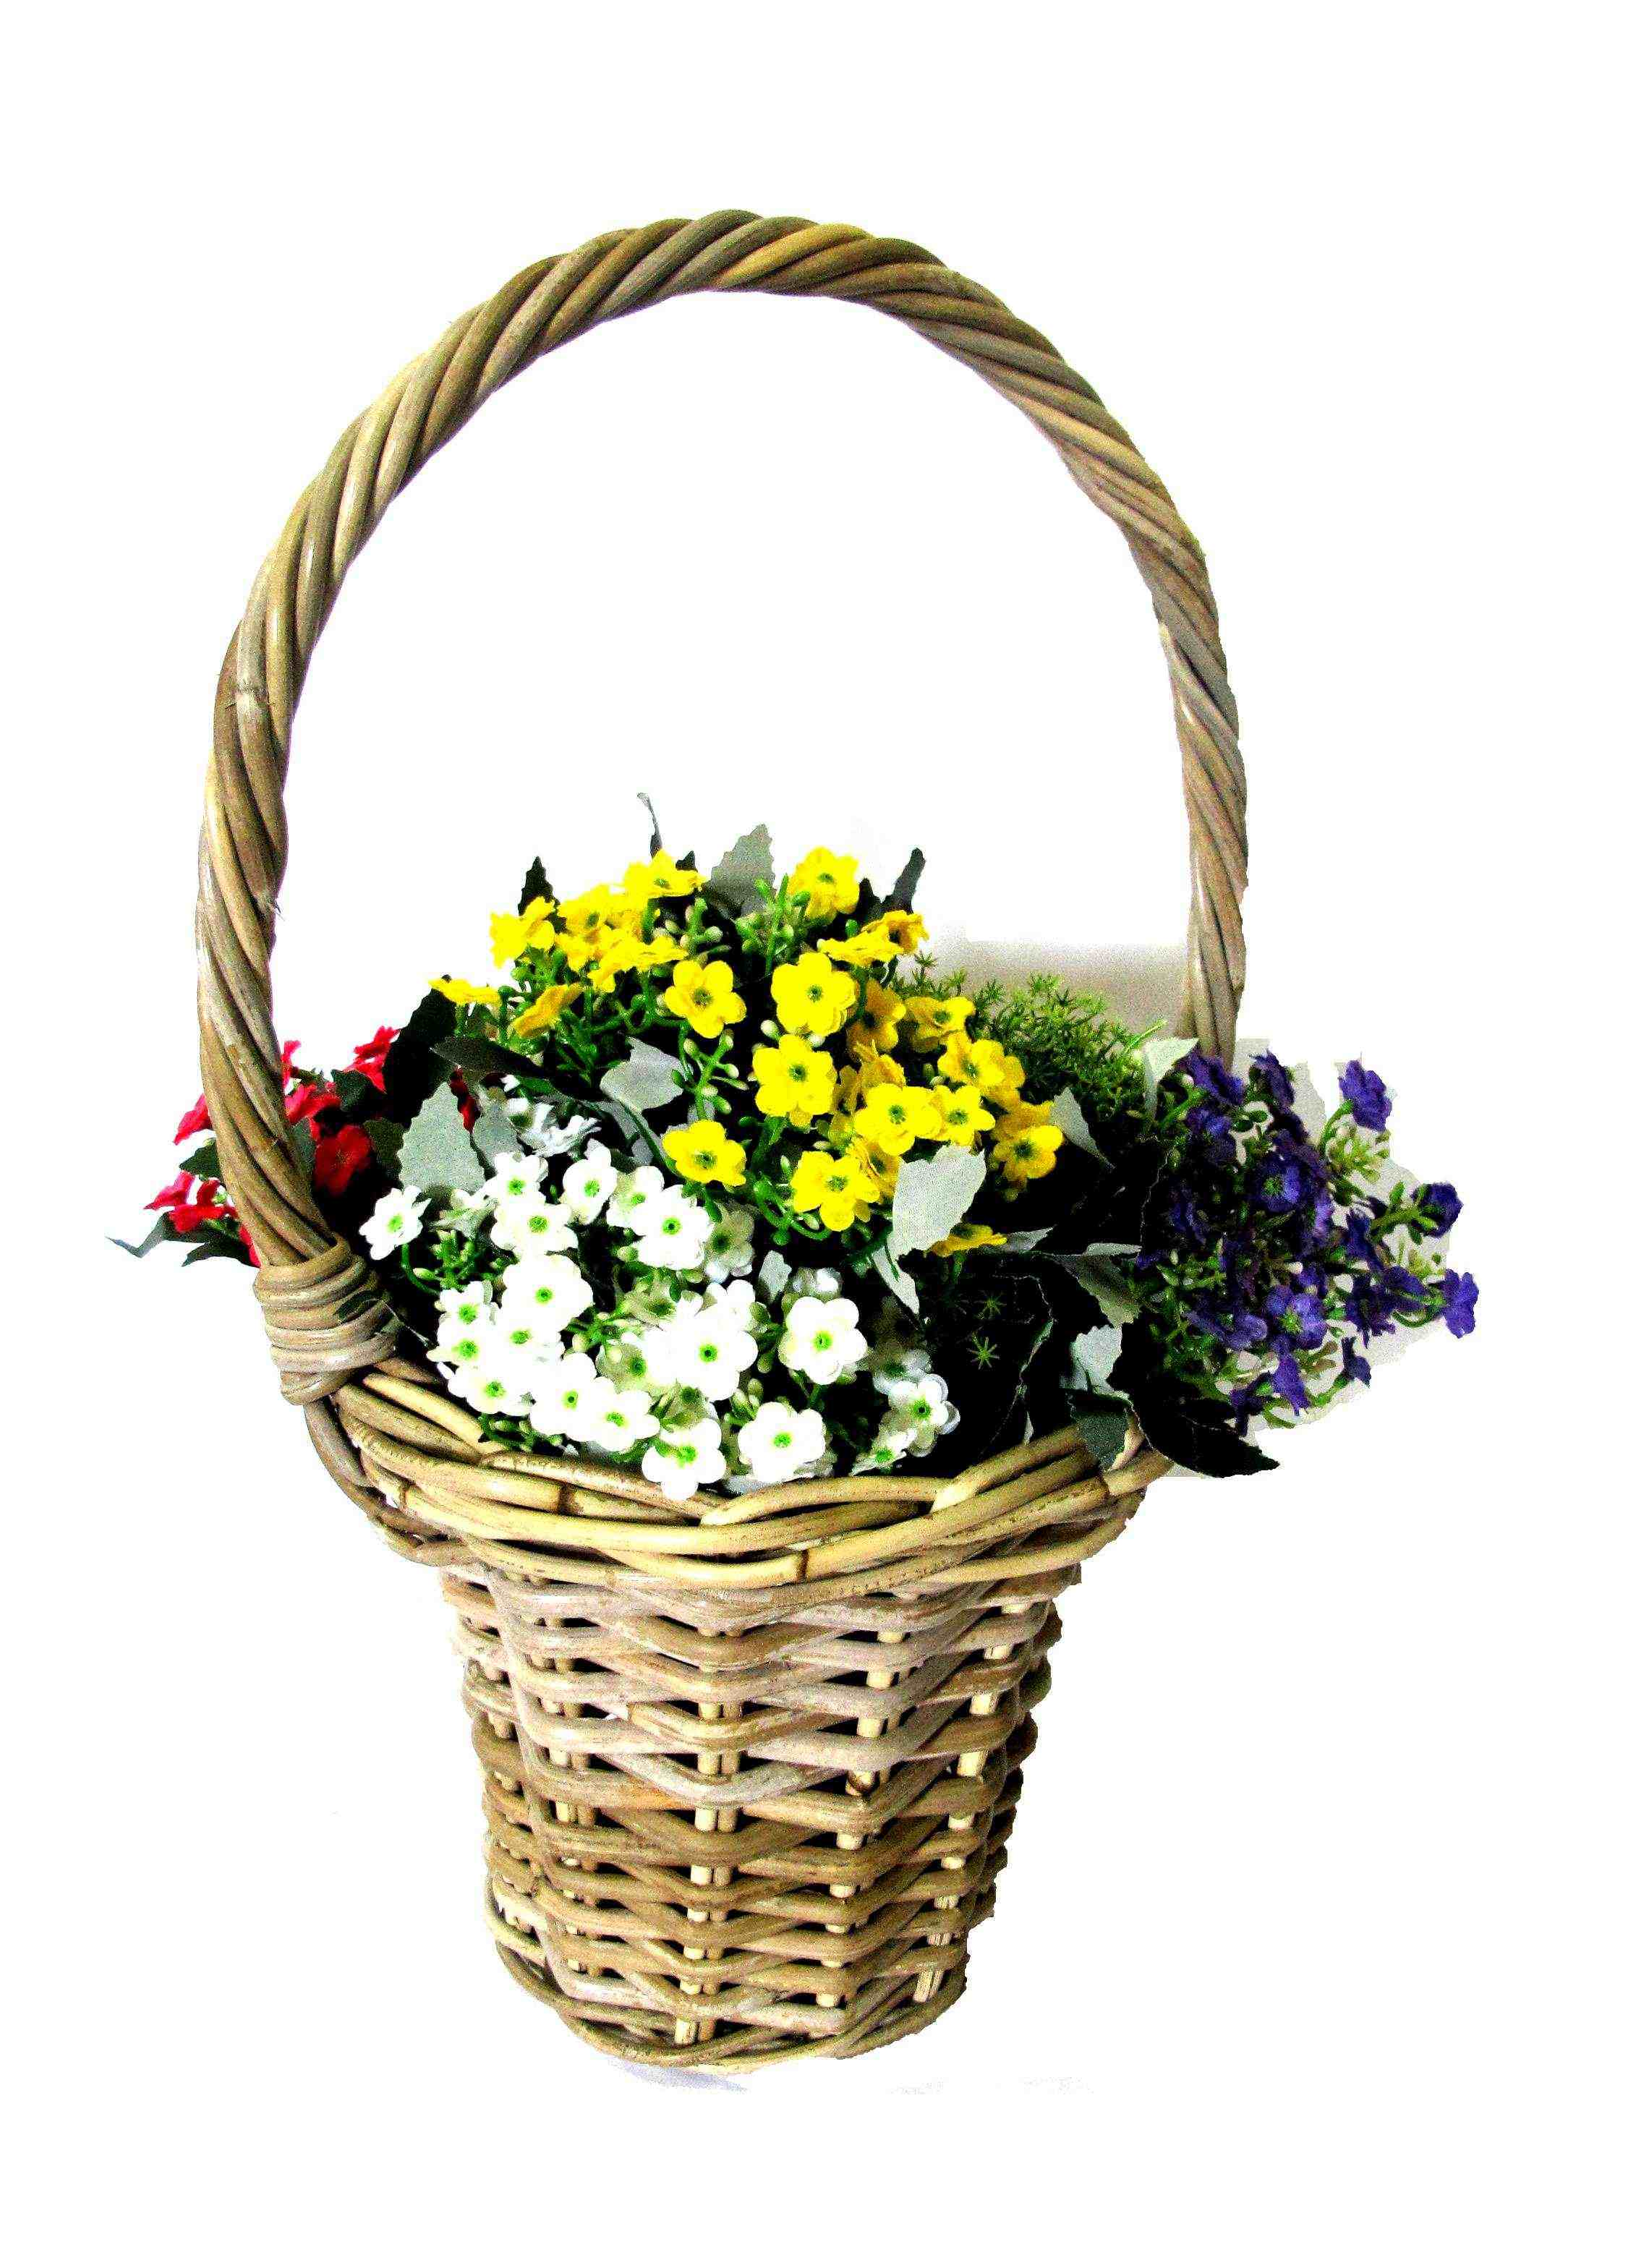 Images Of Flower Baskets : Rattan grey kubu kobo basketwares basketry